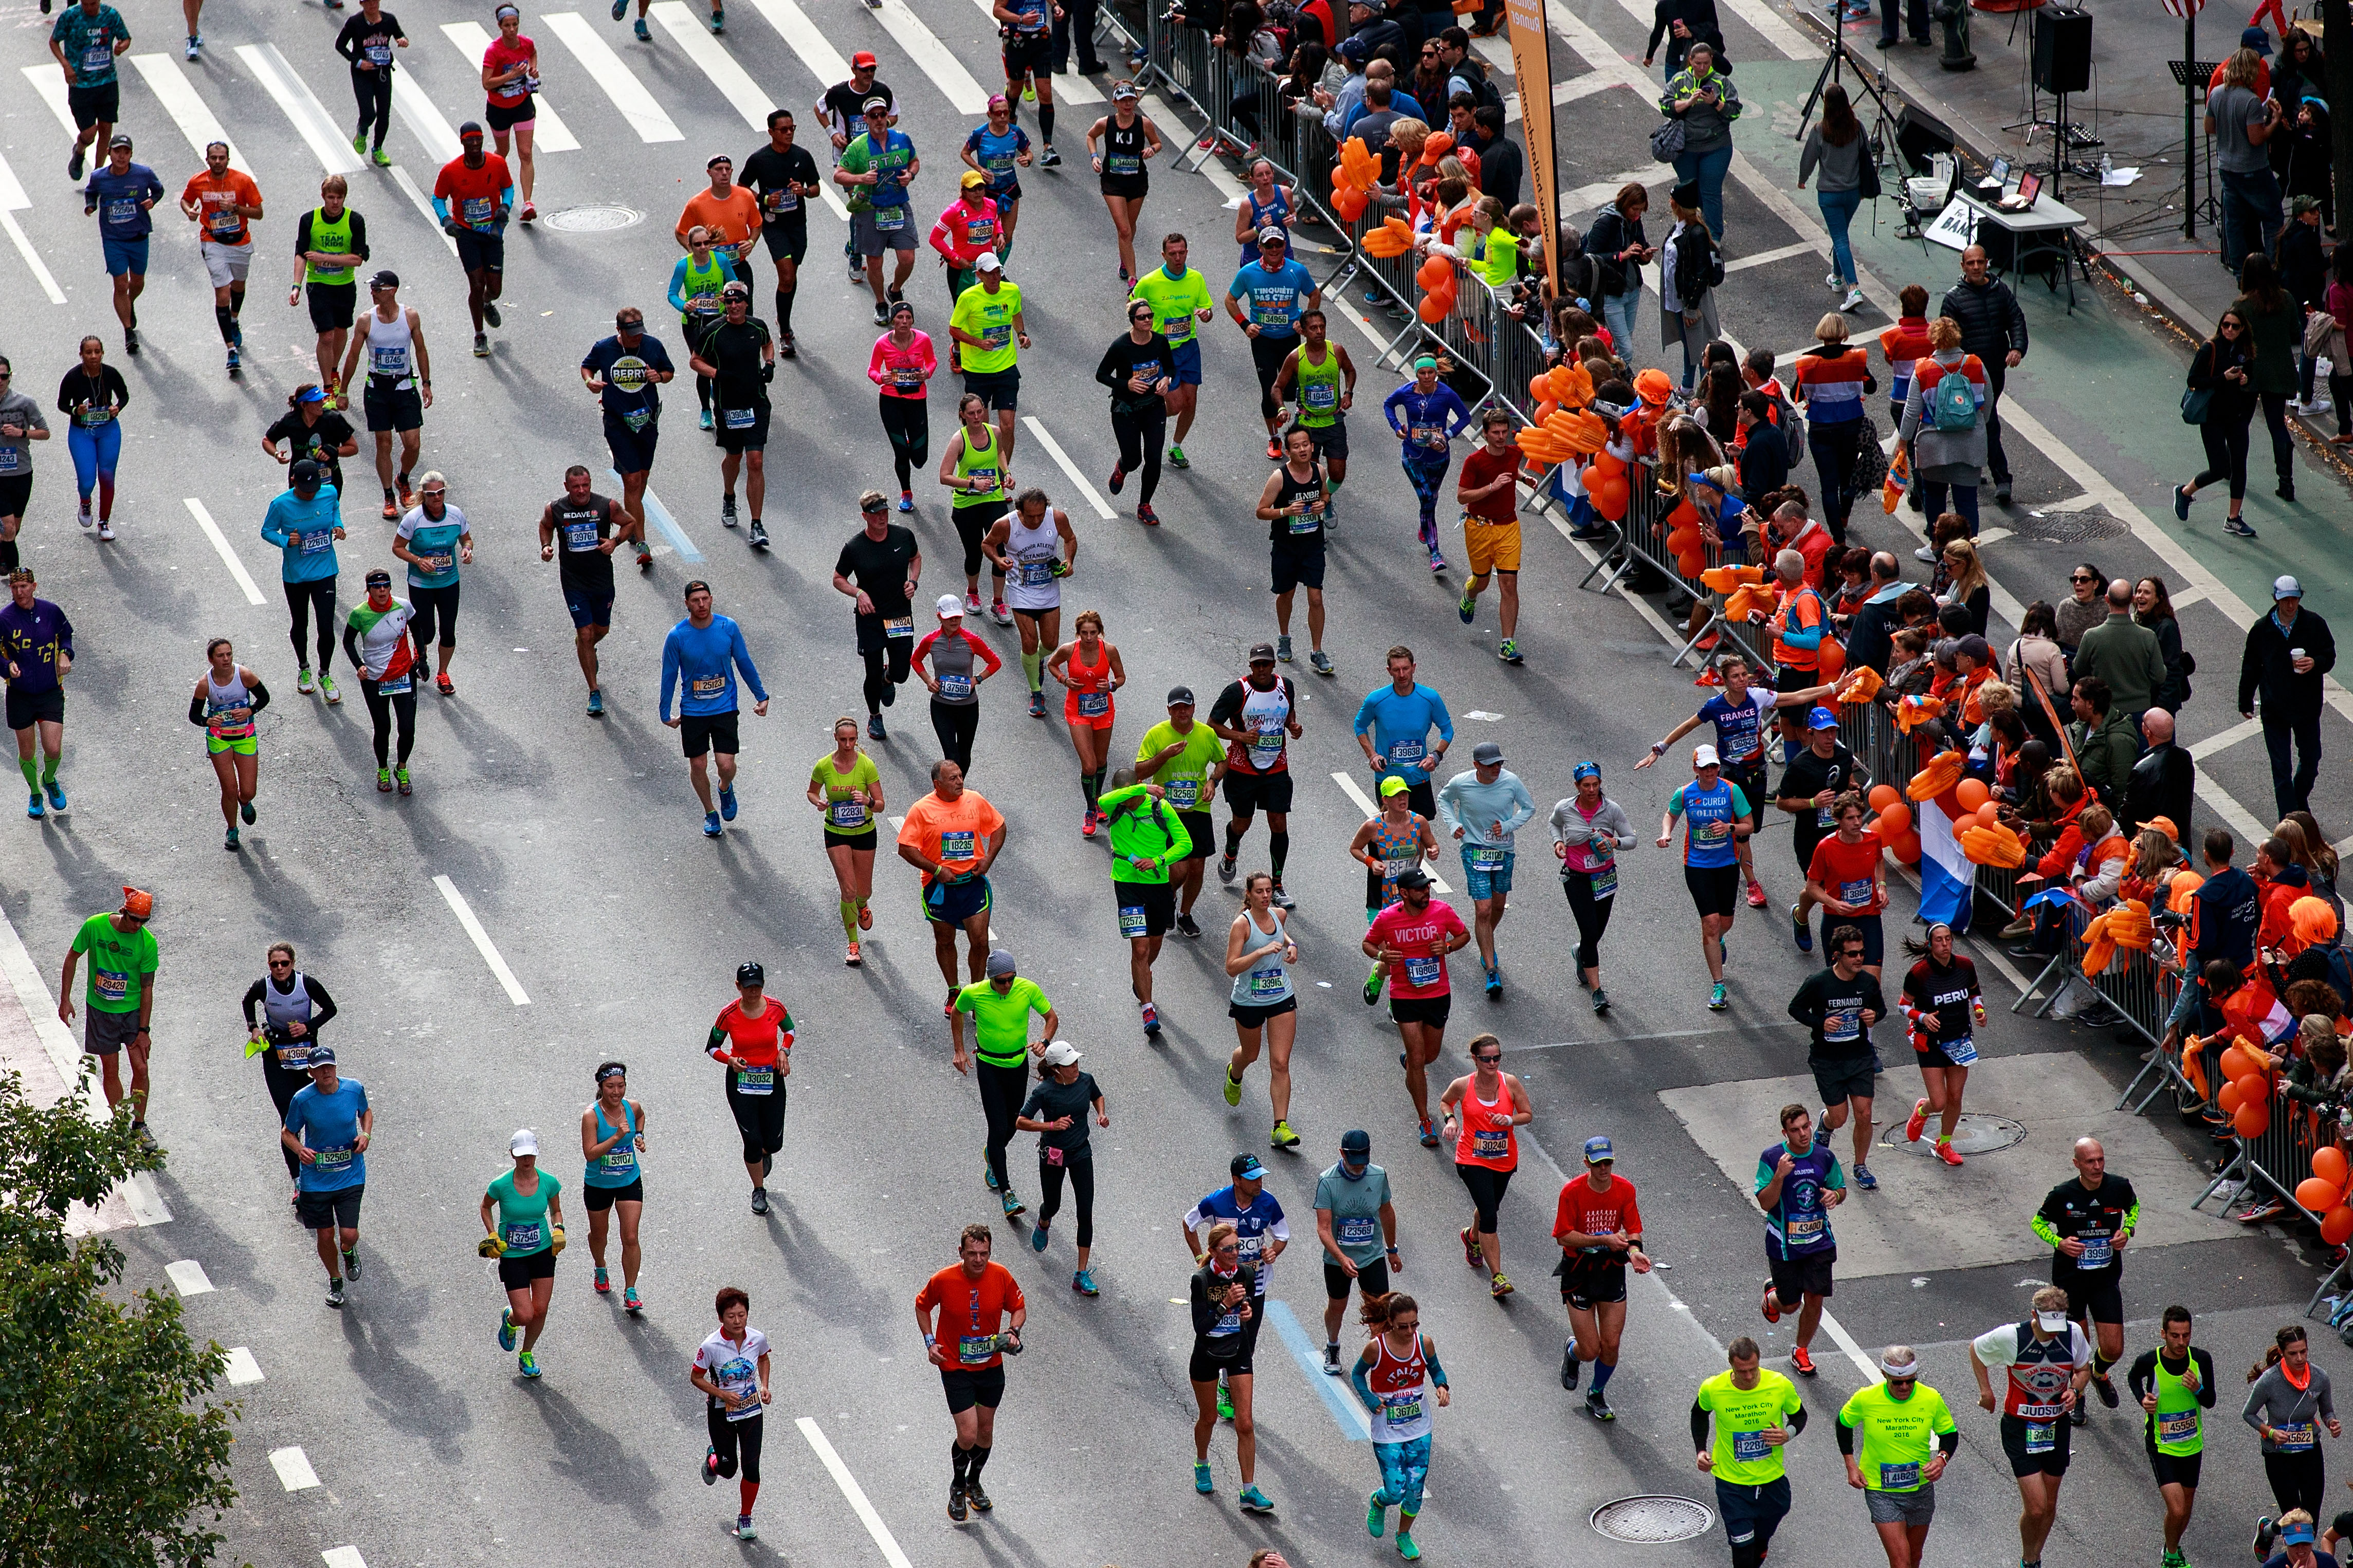 Runners make their way north on First Avenue during the 2016 TCS New York City Marathon, November 6, 2016 in New York City.